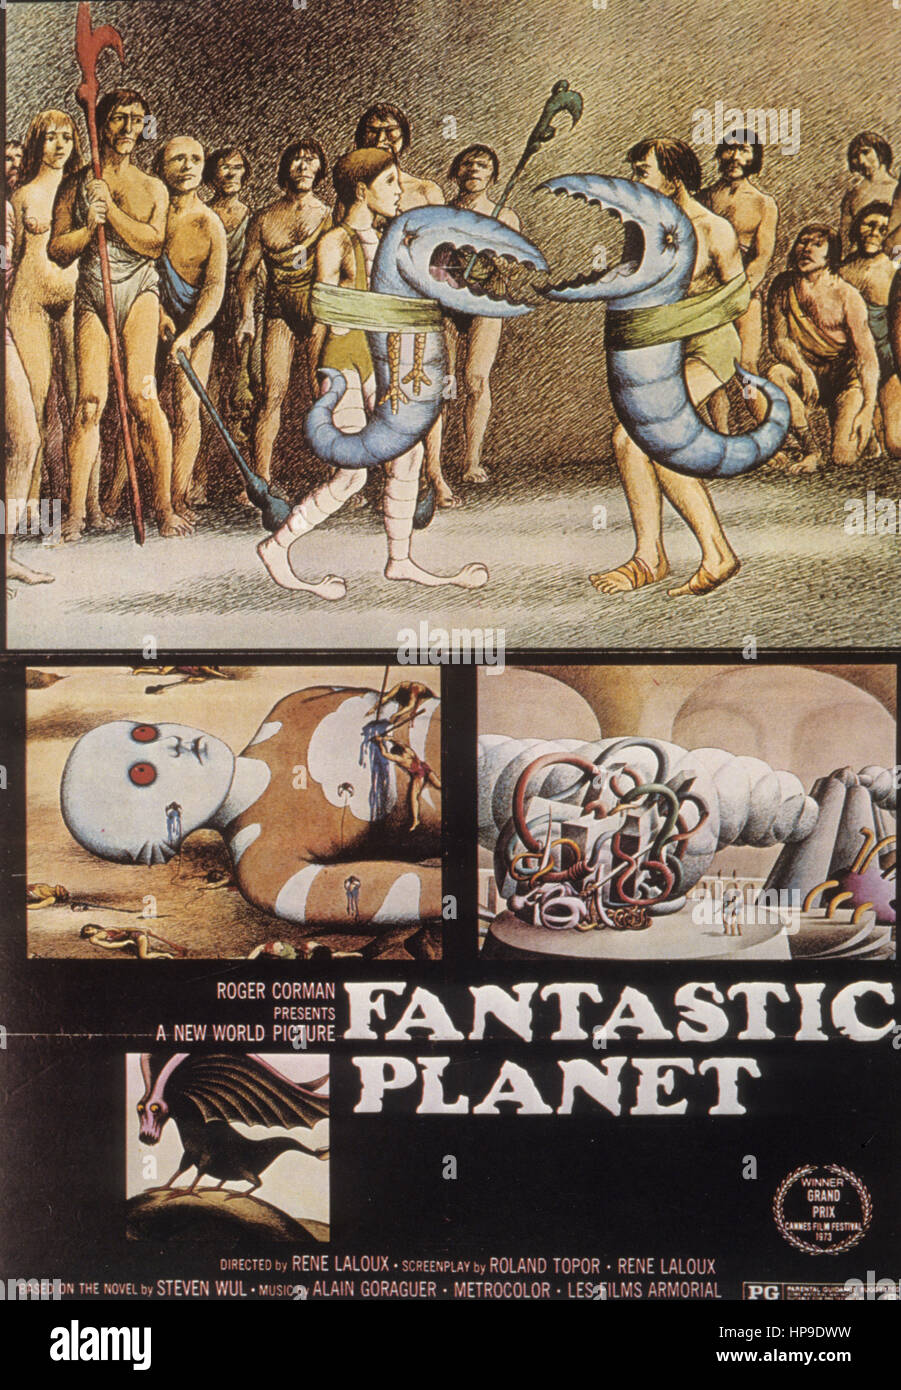 Fantastic planet, 1973 Photo Stock